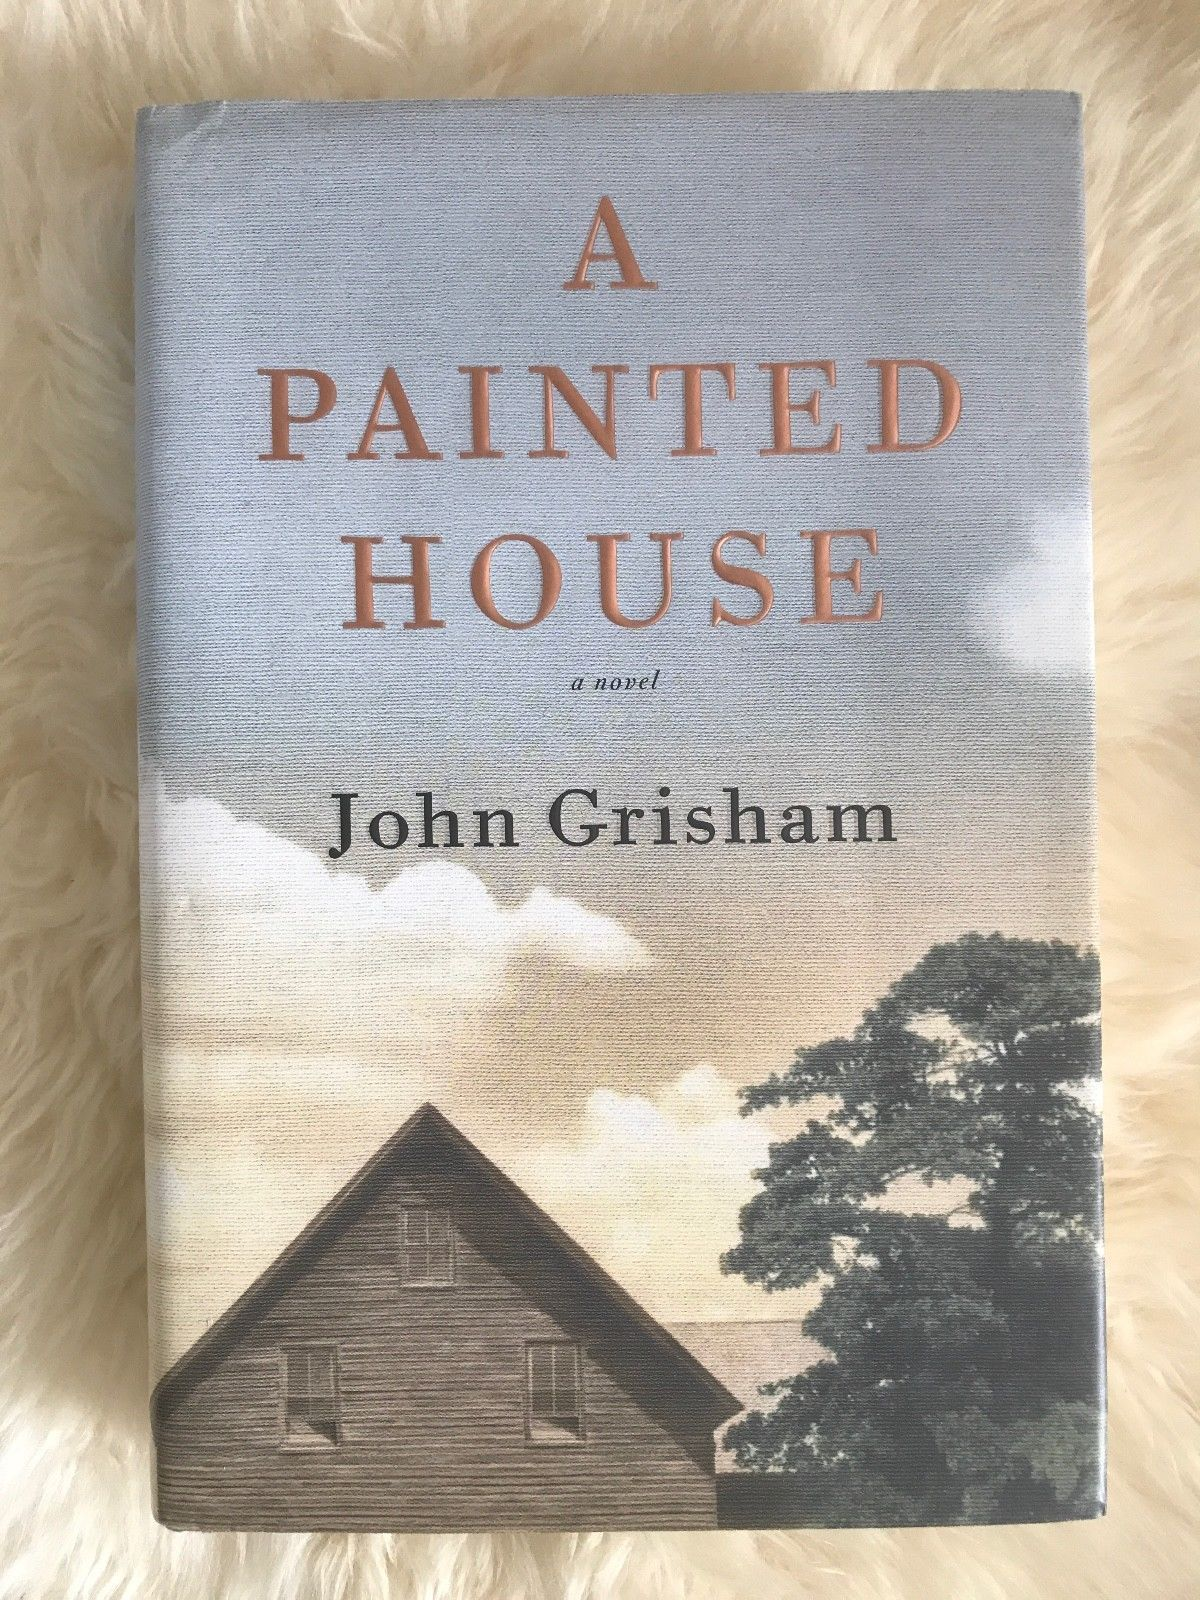 a painted house john grisham John grisham's engrossing new coming-of-age novel should banish any notion that his talent is limited to writing legal thrillers set in the low, cotton-growing flatlands of northeastern arkansas in 1952, a painted house chronicles two months in the life of seven-year-old luke chandler before the.